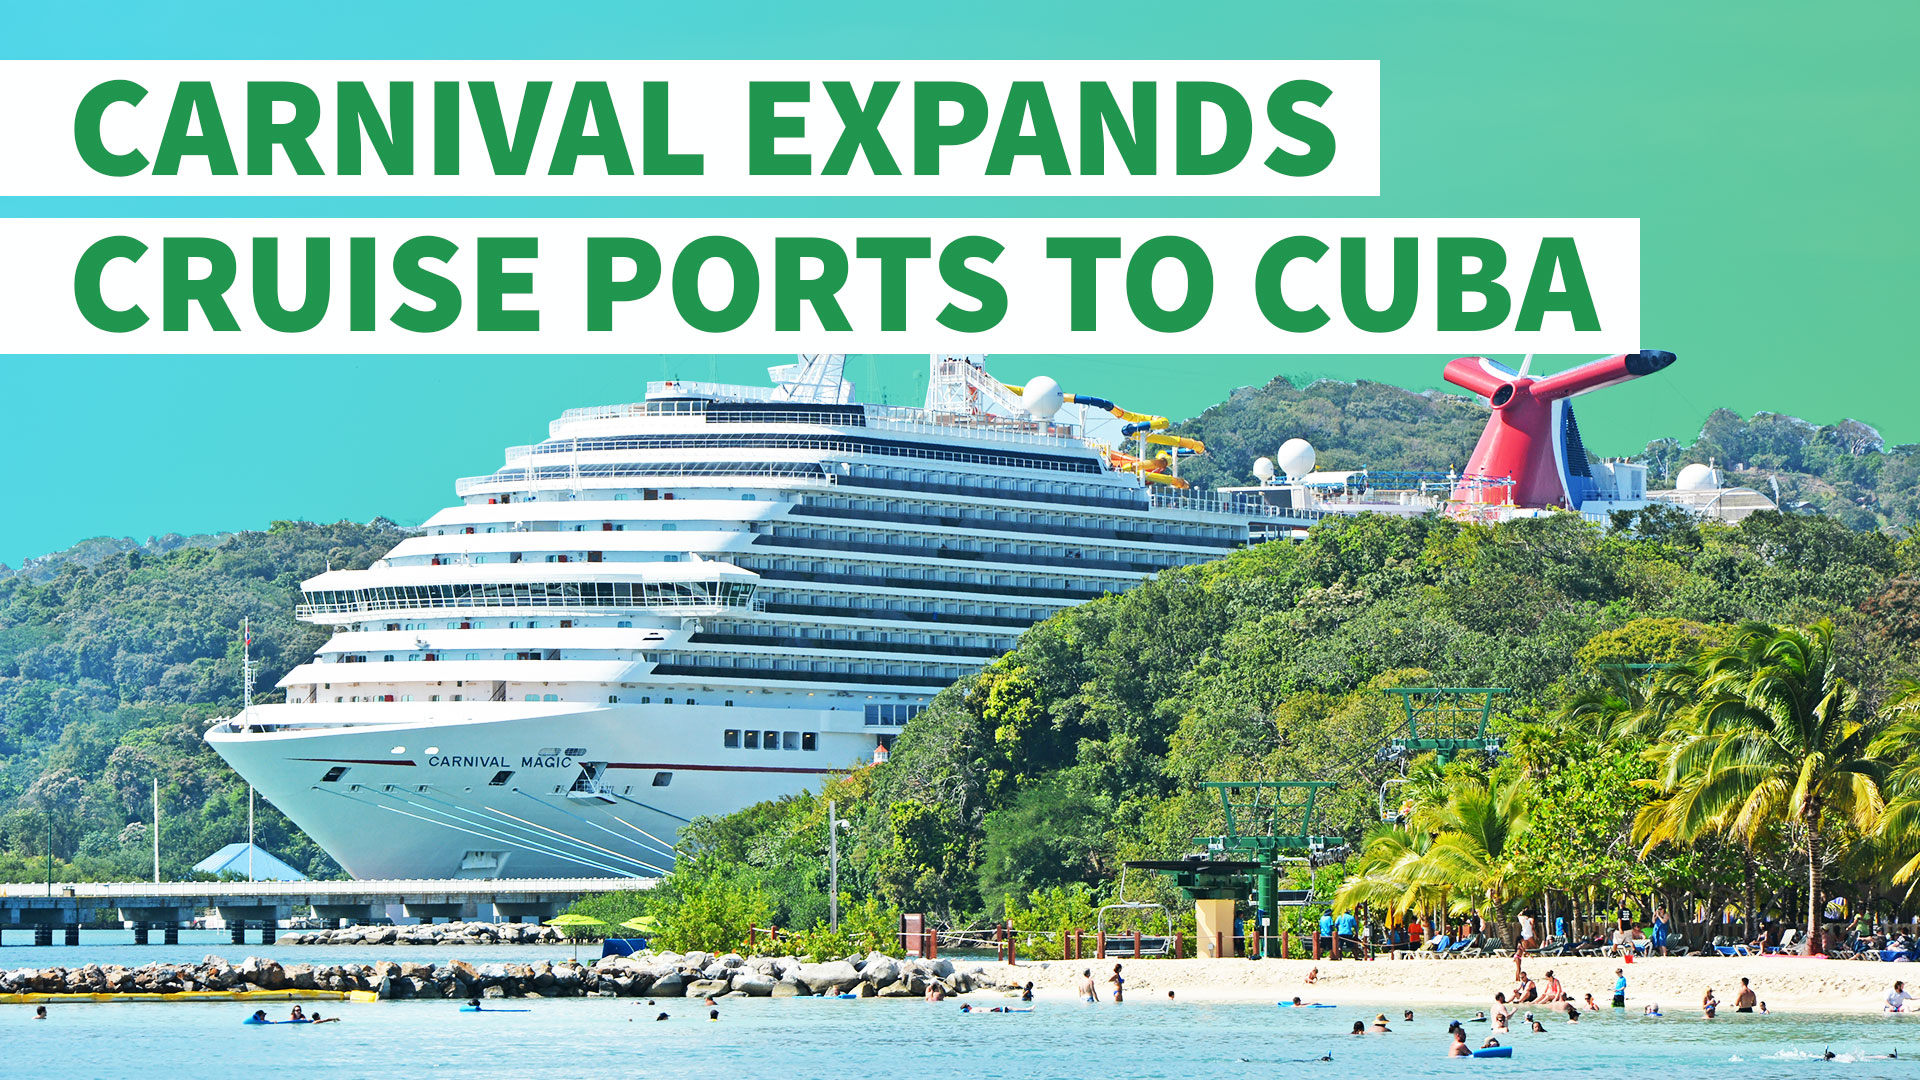 Credit Cards For Credit Score Under 600 >> Carnival Expands Cruise Ports to Cuba for Under $600 Per ...